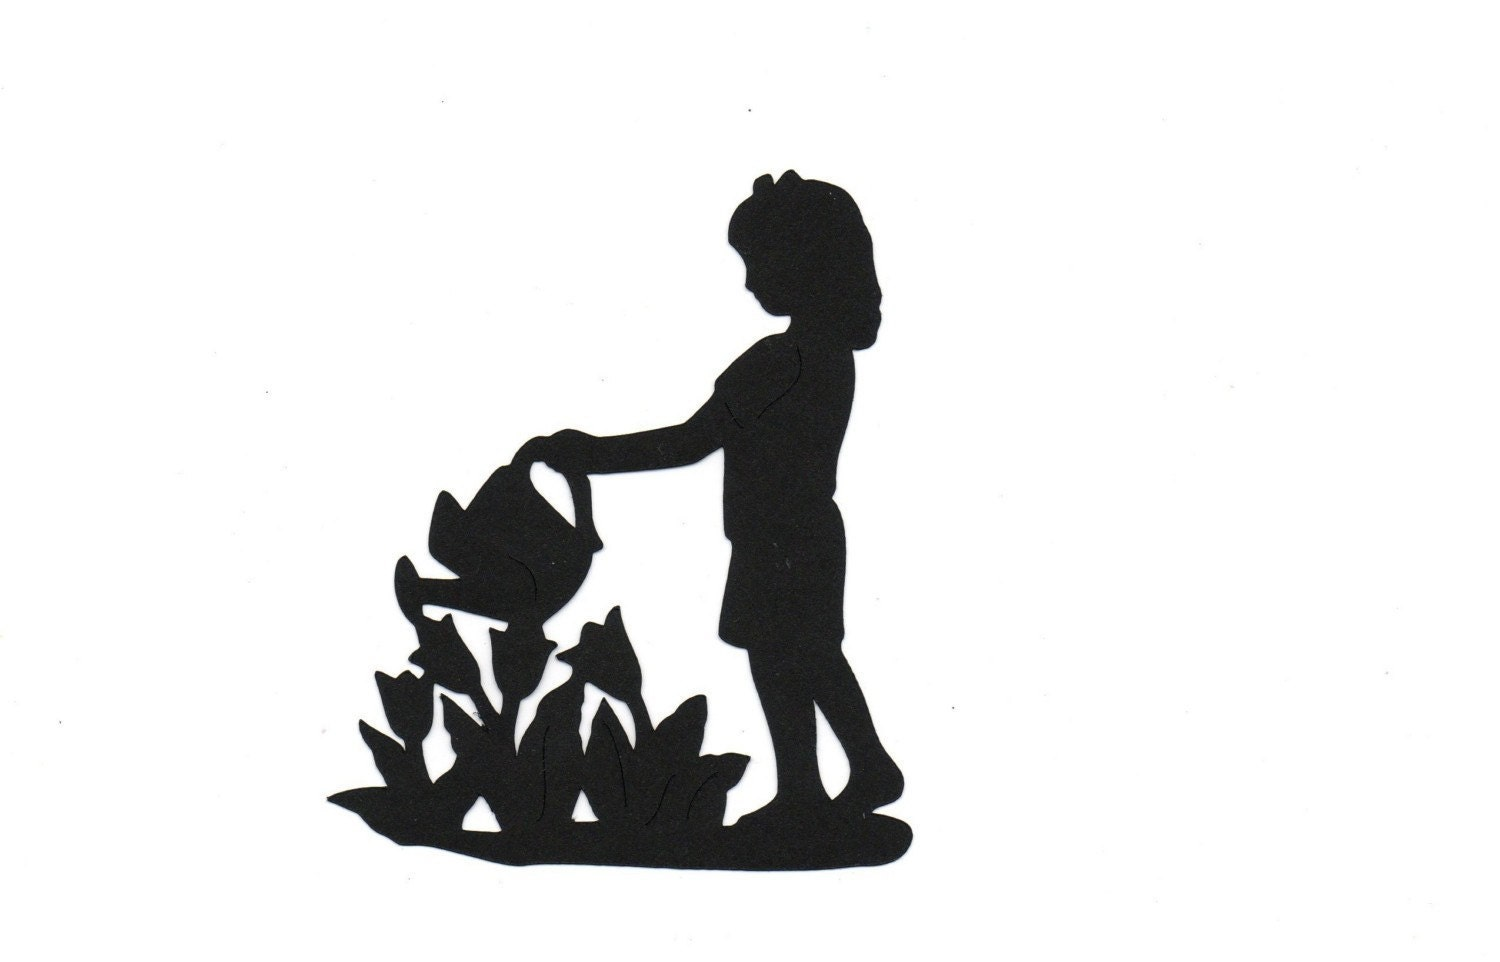 Girl in Gardenflowers Child Silhouette by